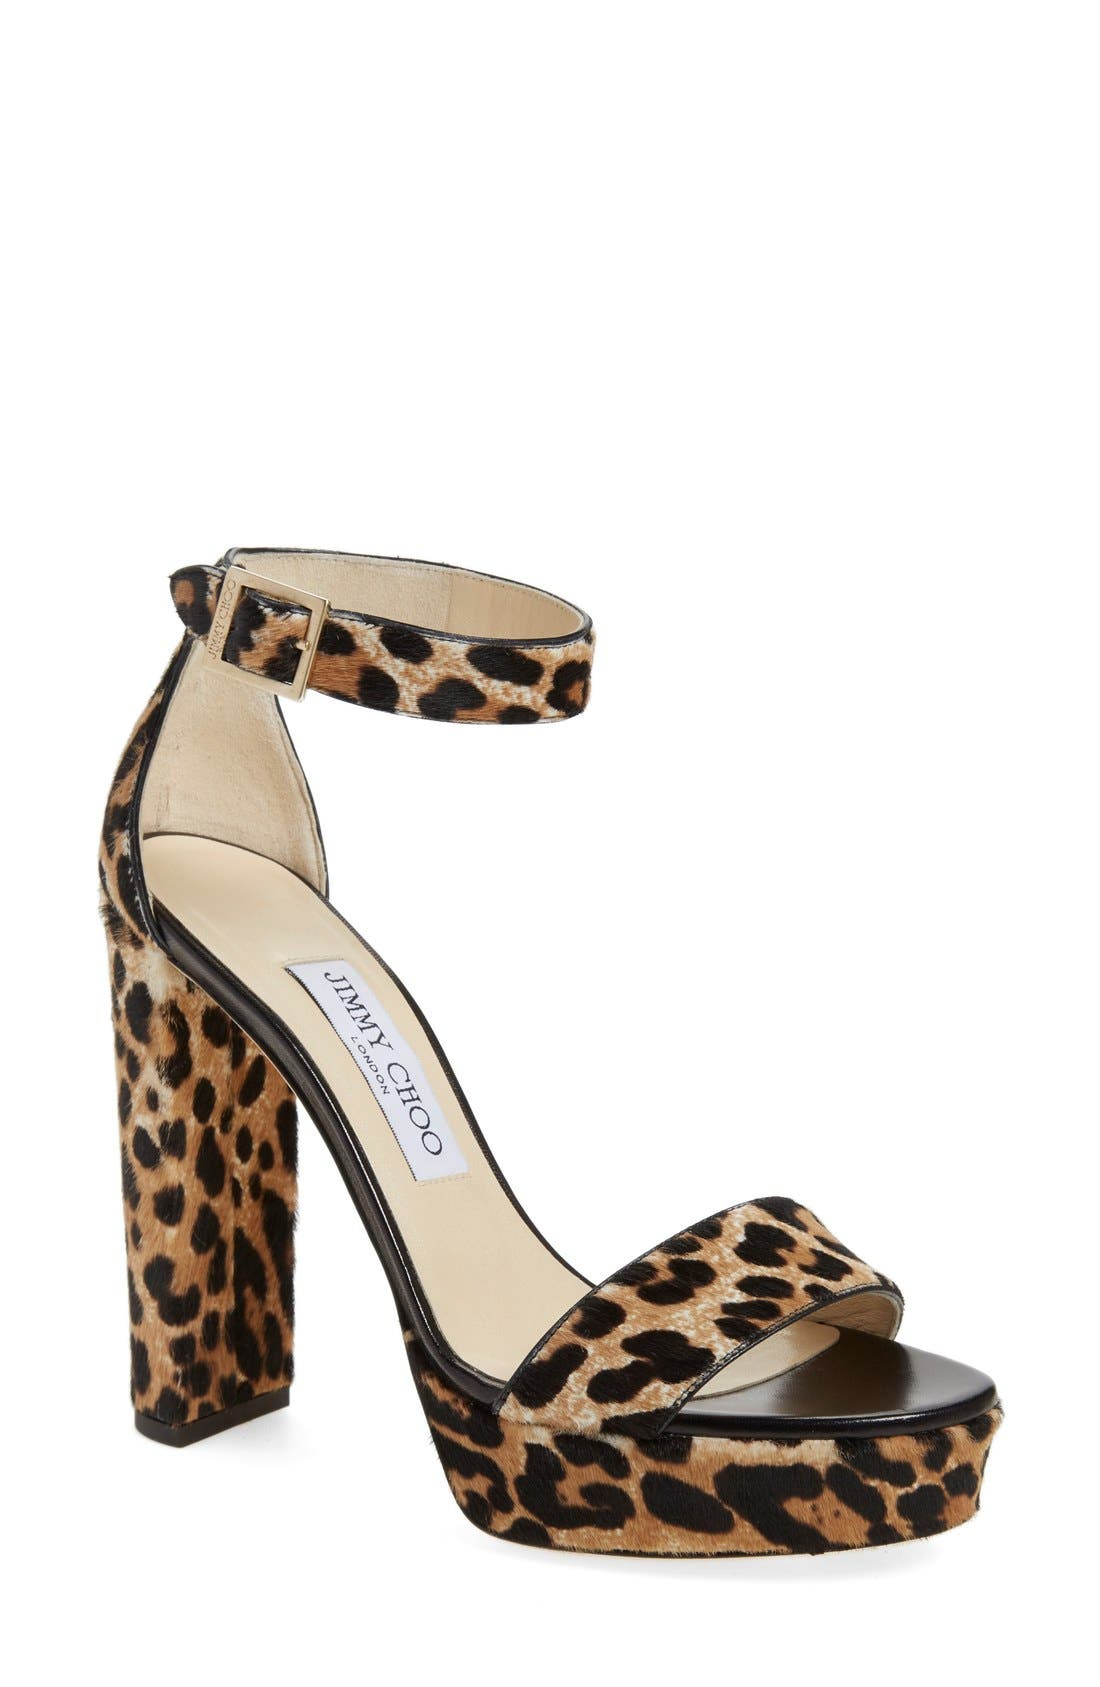 JIMMY CHOO 'Holly' Ankle Strap Sandal, Main, color, 200